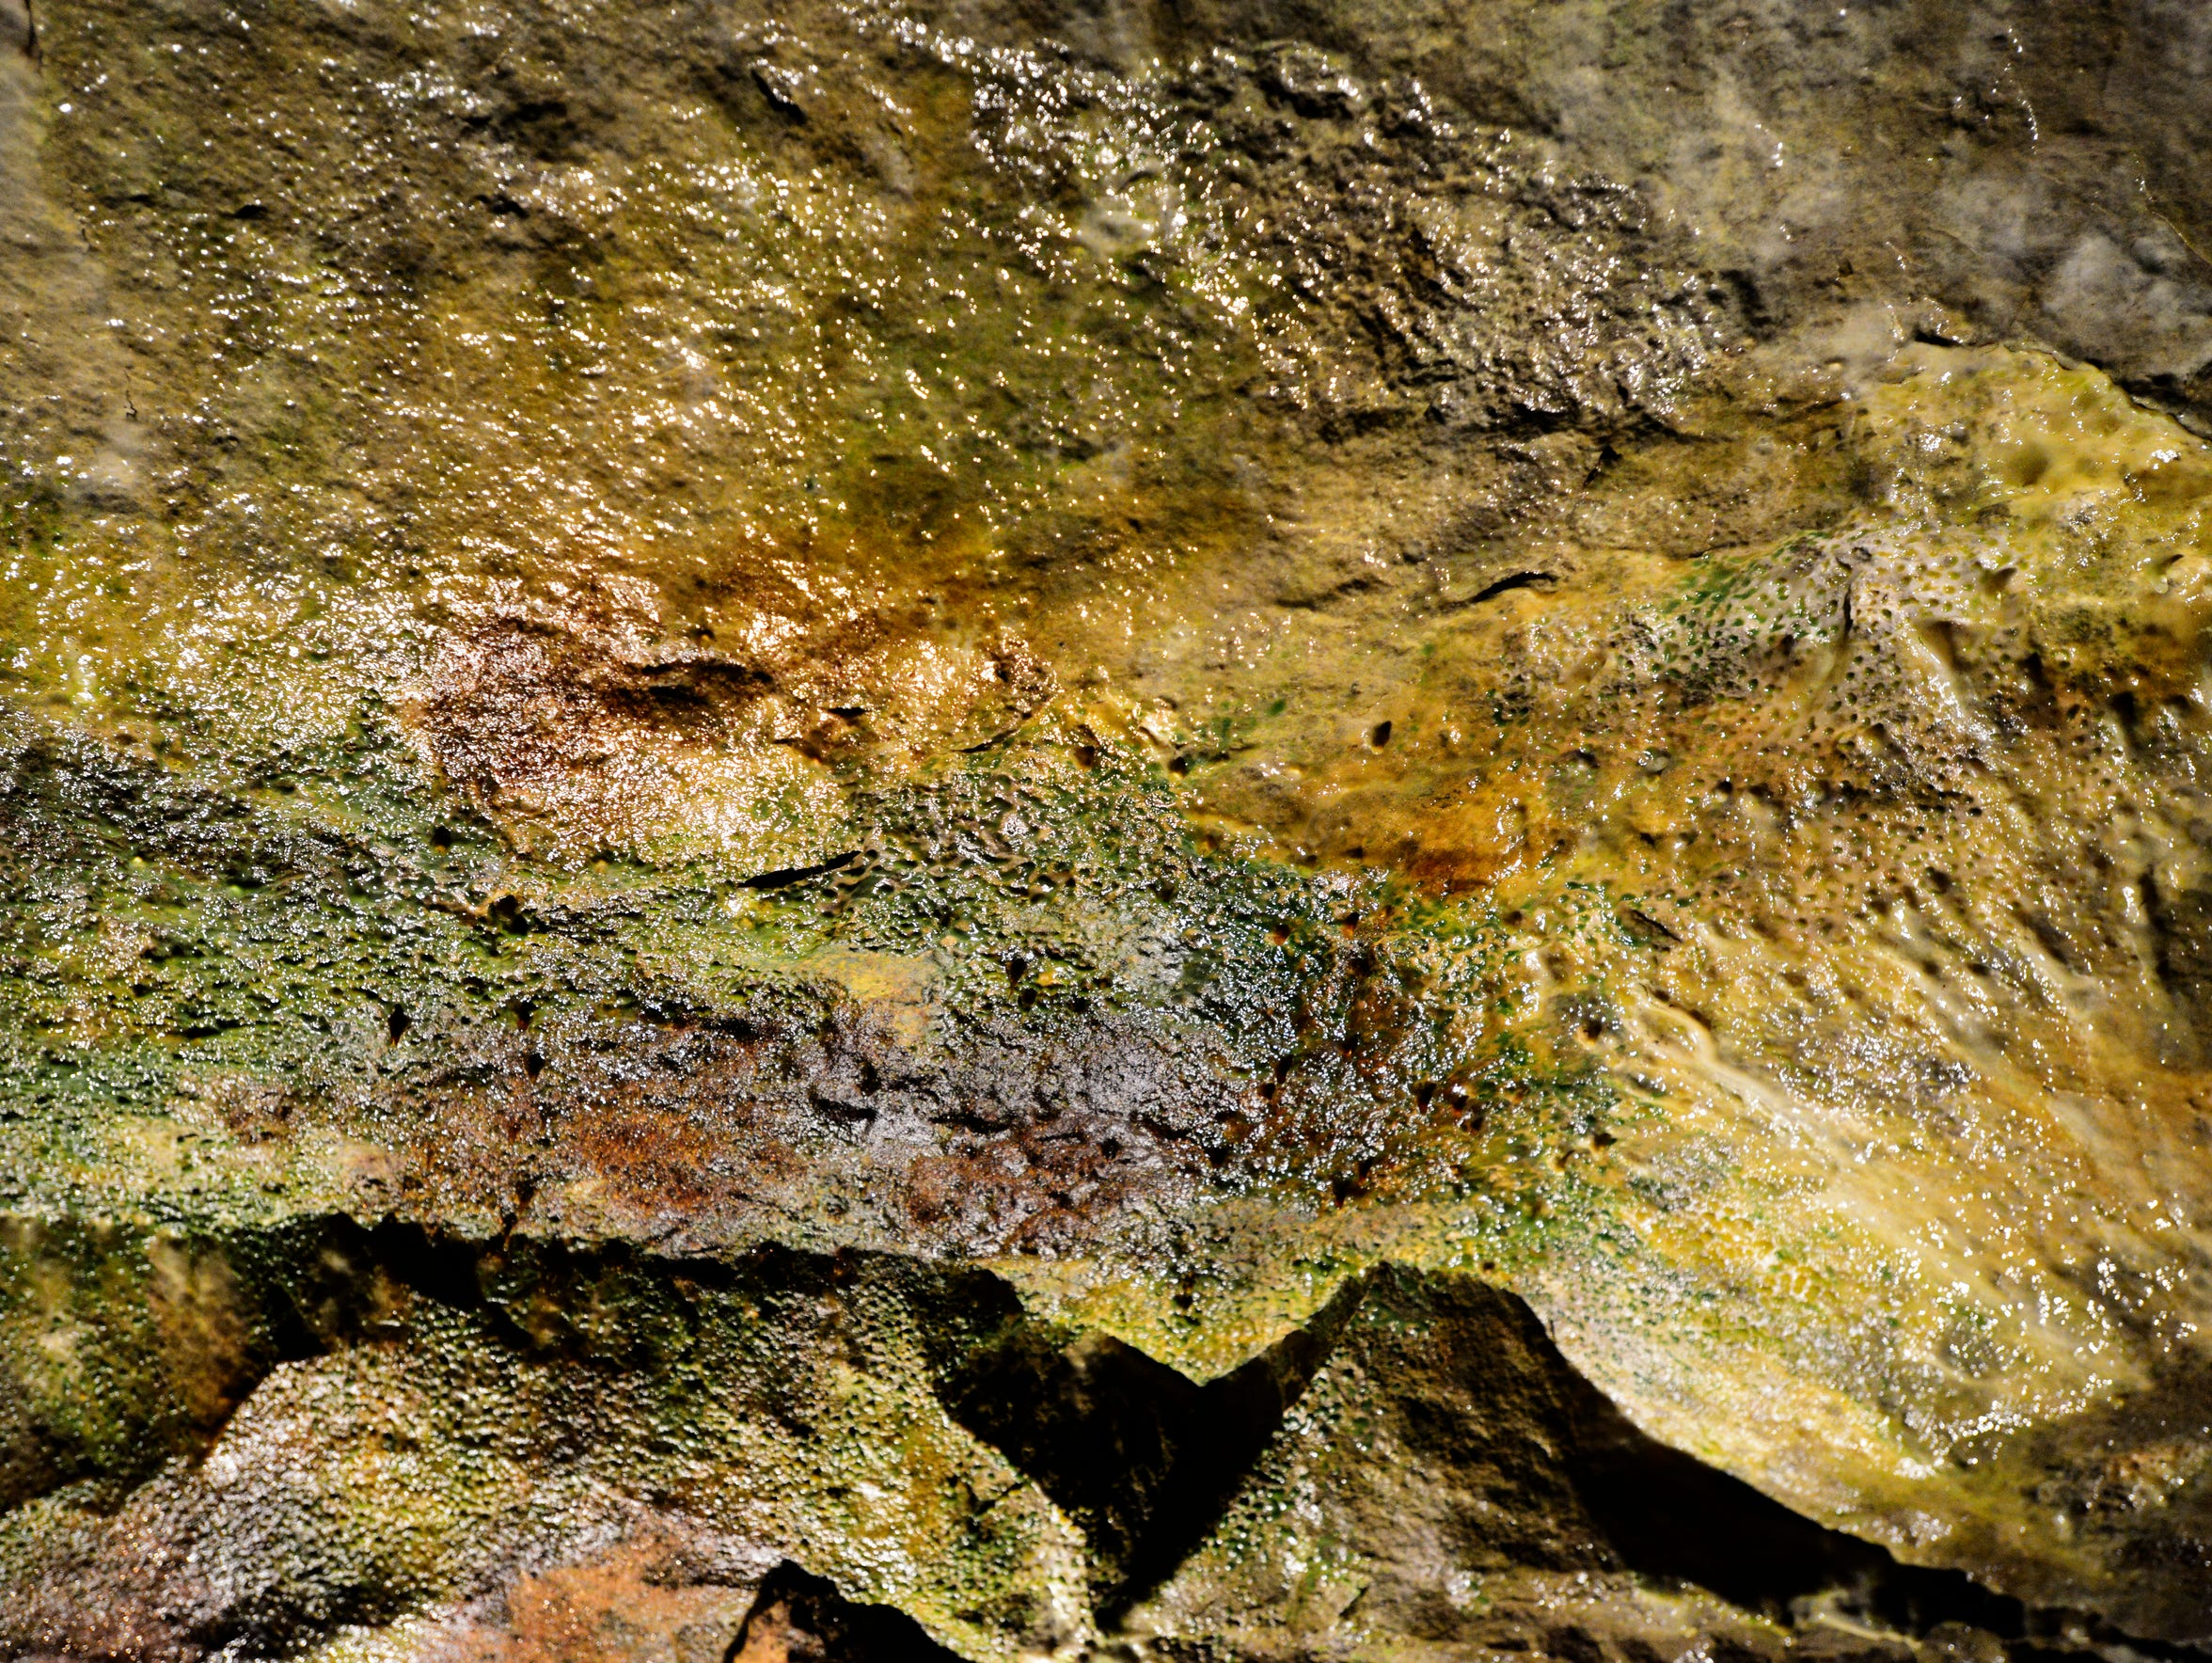 Seneca Caverns holds fossils from the great shallow